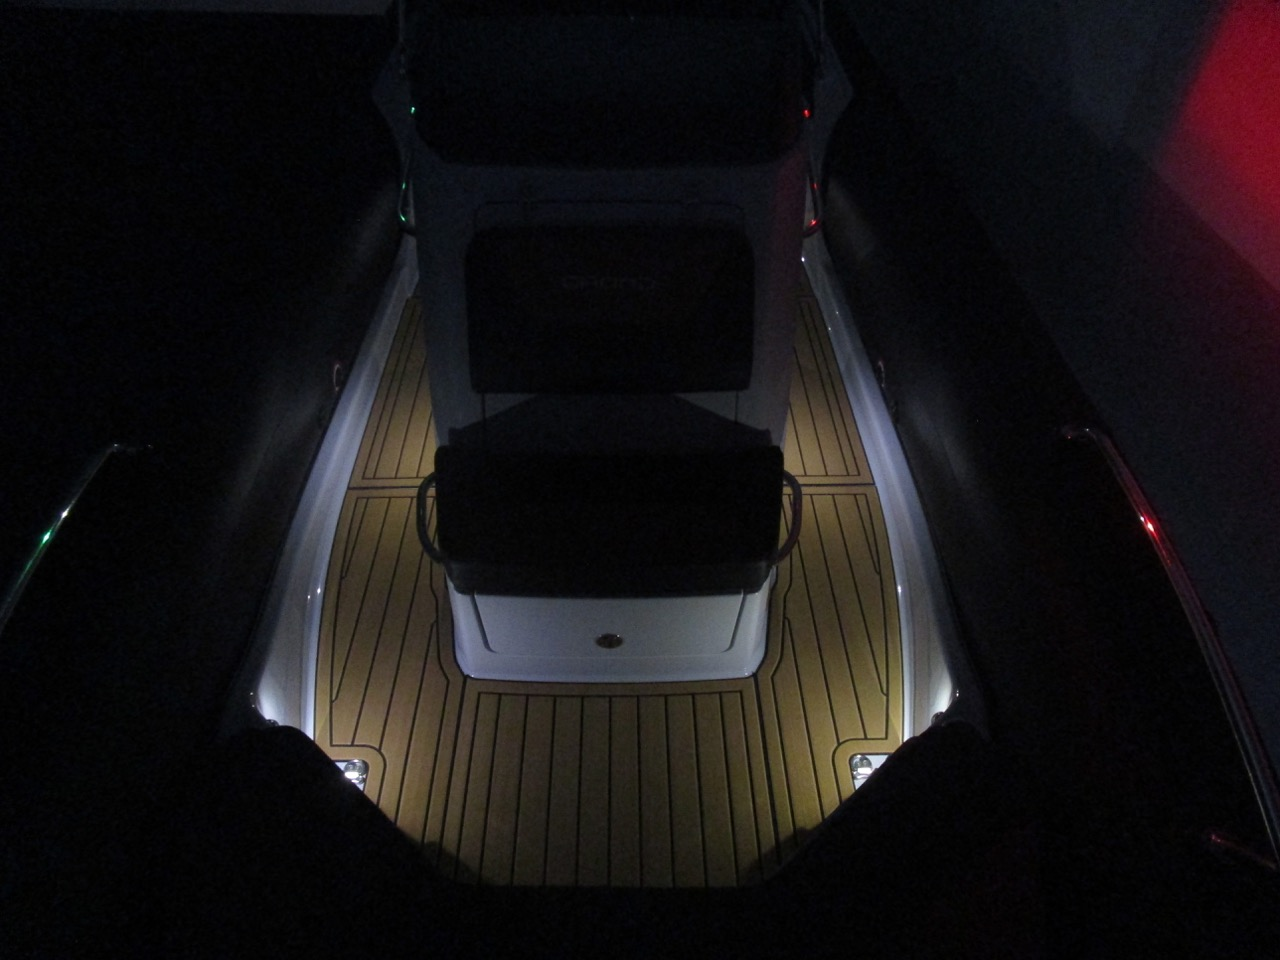 GRAND G750 RIB LED deck lights, bow